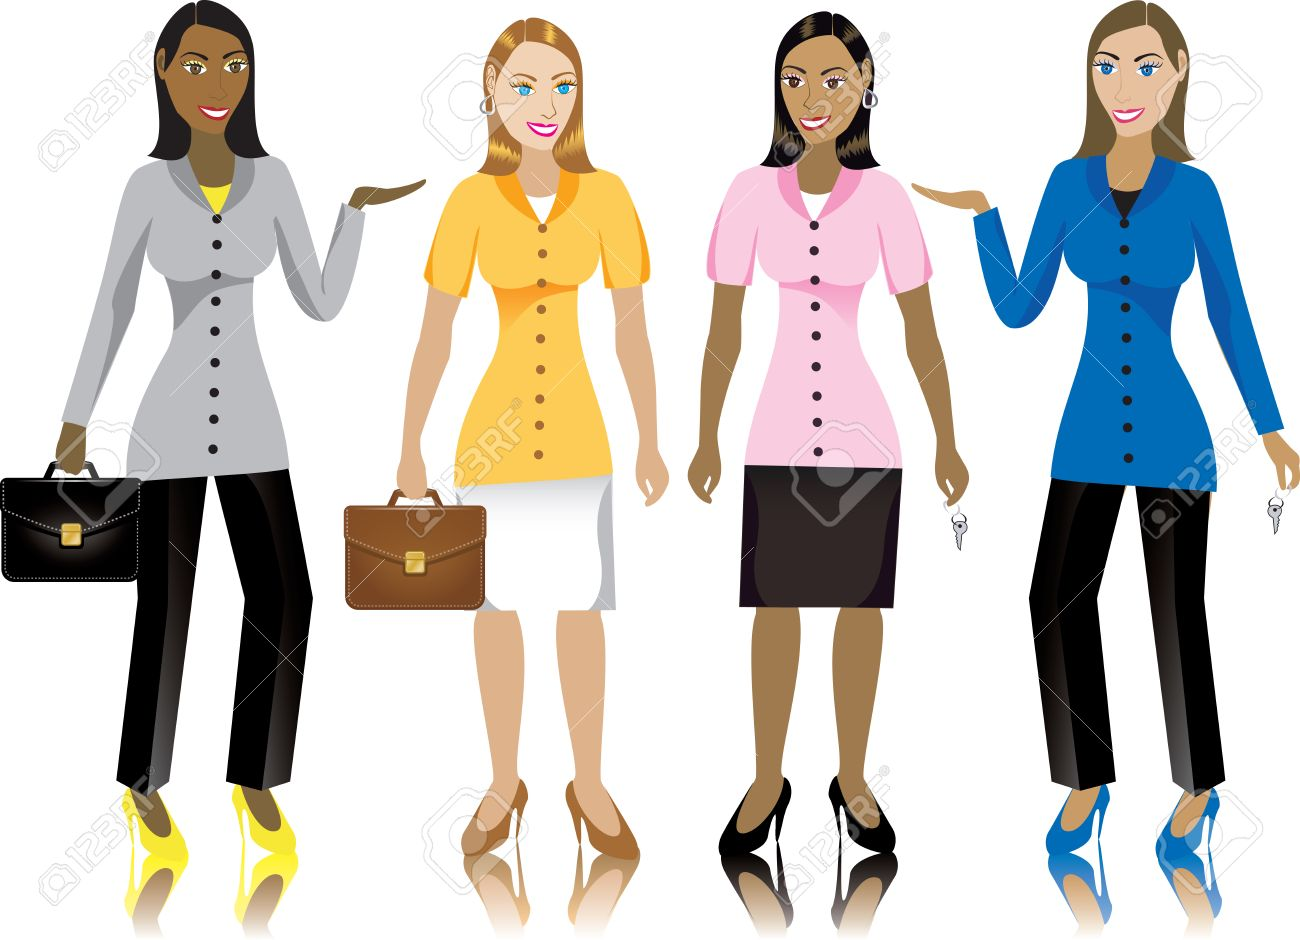 career business women in suits illustration royalty career business women in suits illustration stock vector 6675836